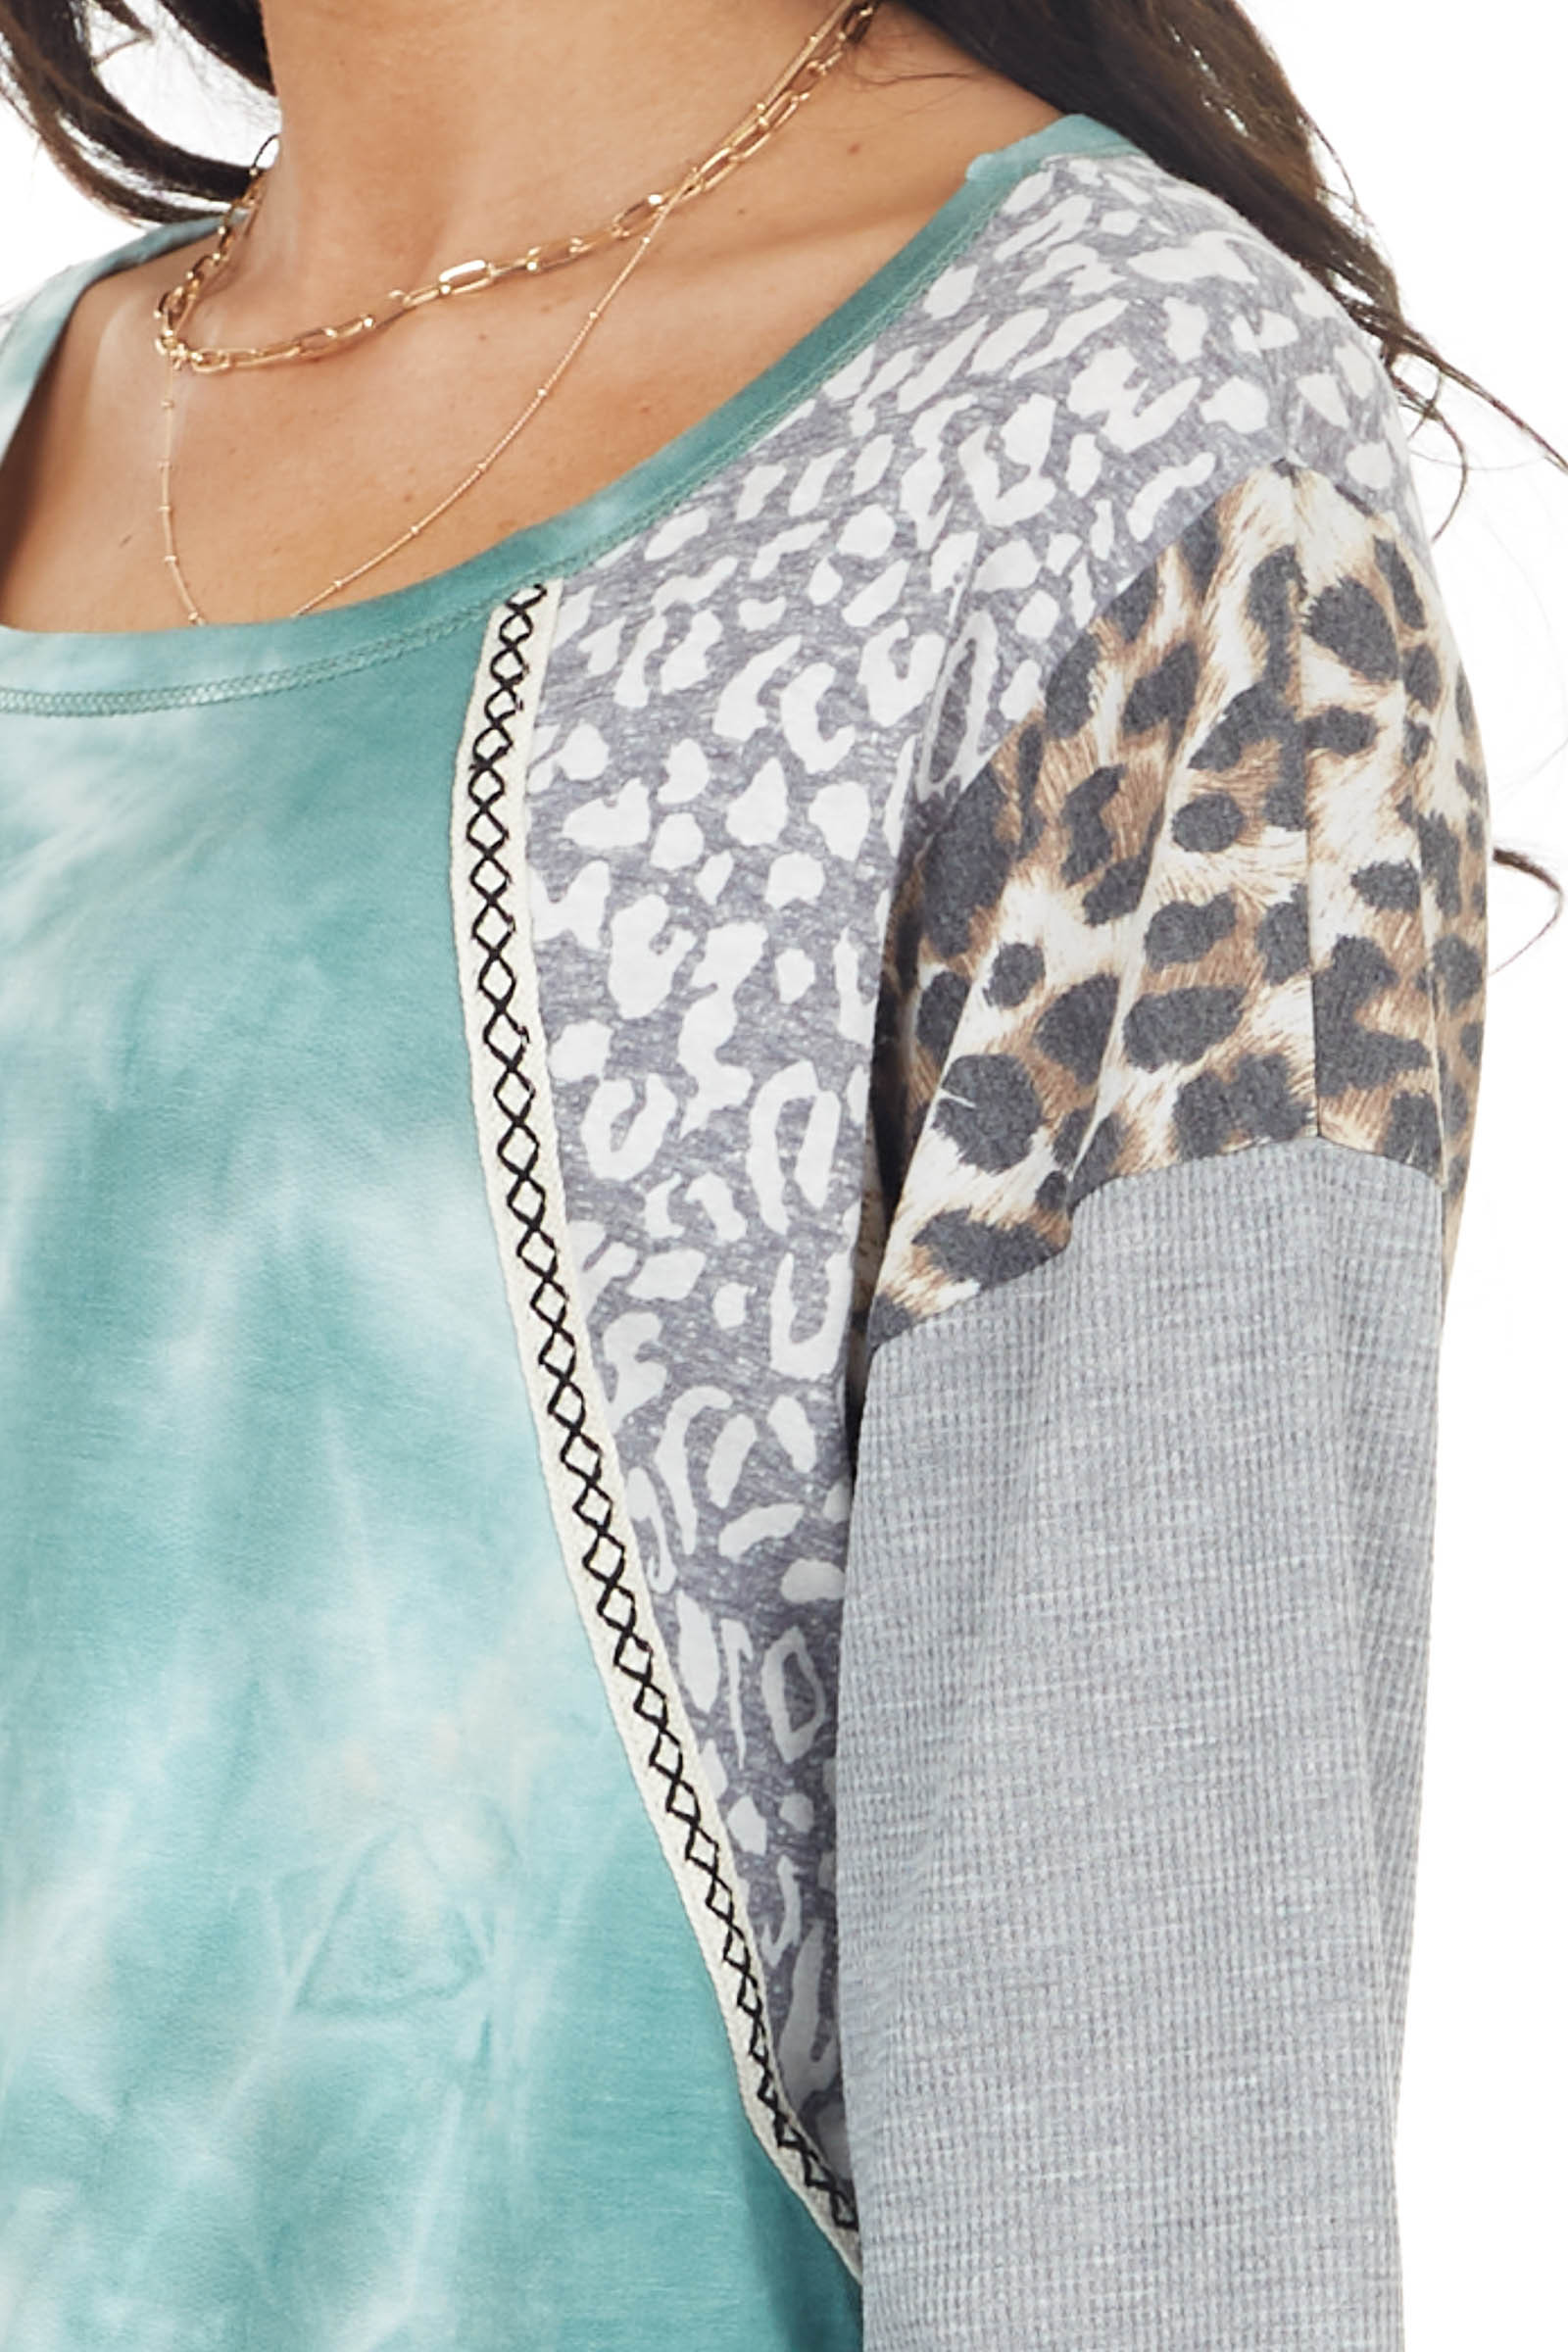 Teal Tie Dye Top with Leopard and Cheetah Print Contrast